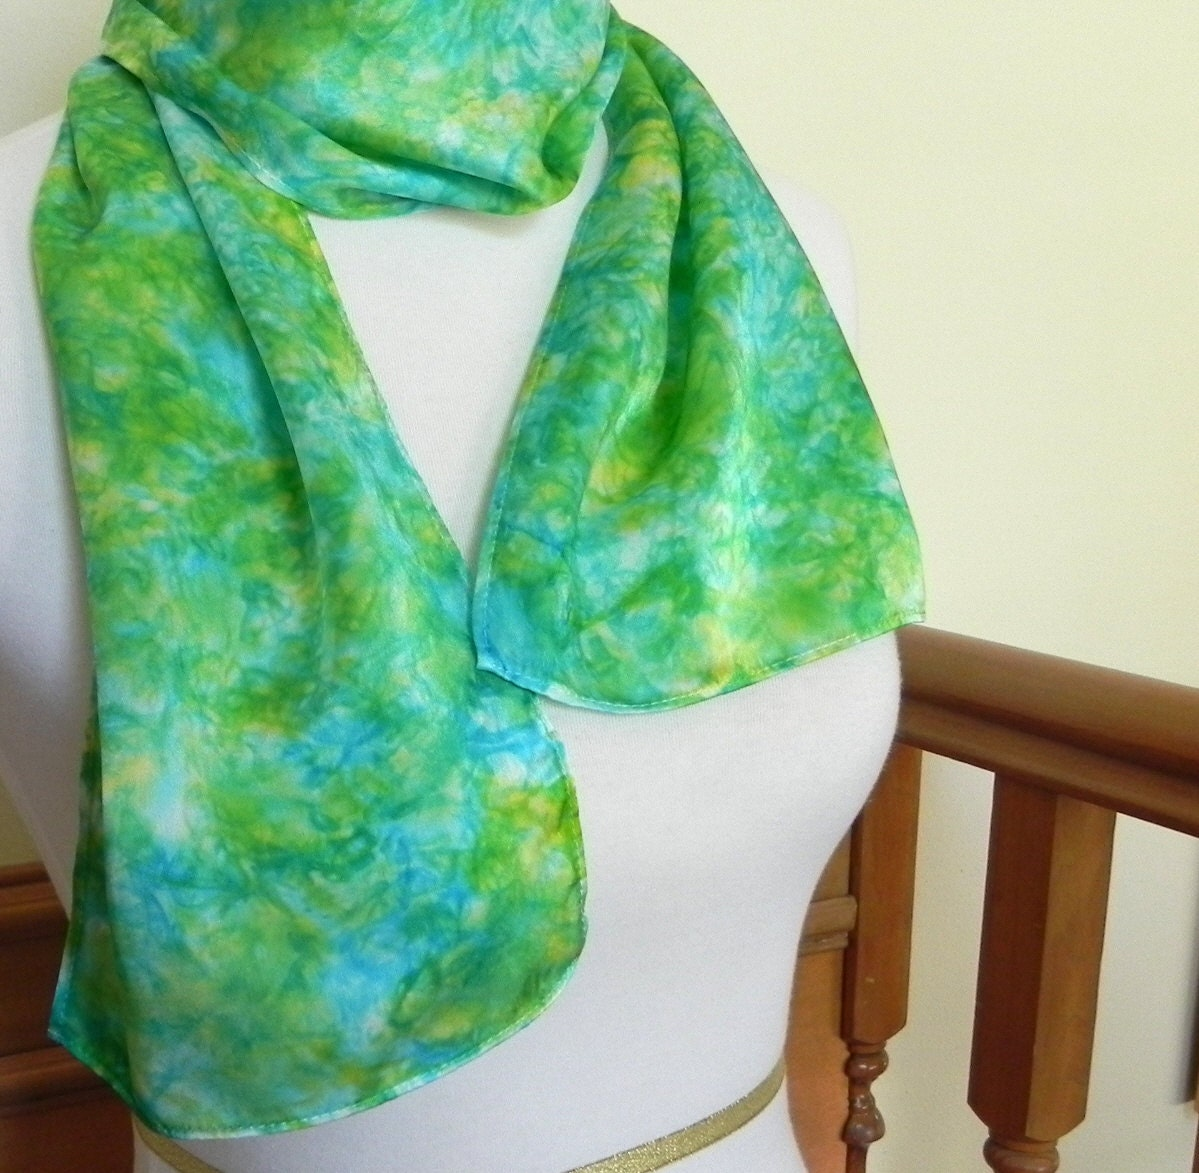 Silk Scarf Hand Dyed Shades of Green and Turquoise Blue, Ready to Ship - RosyDaysScarves